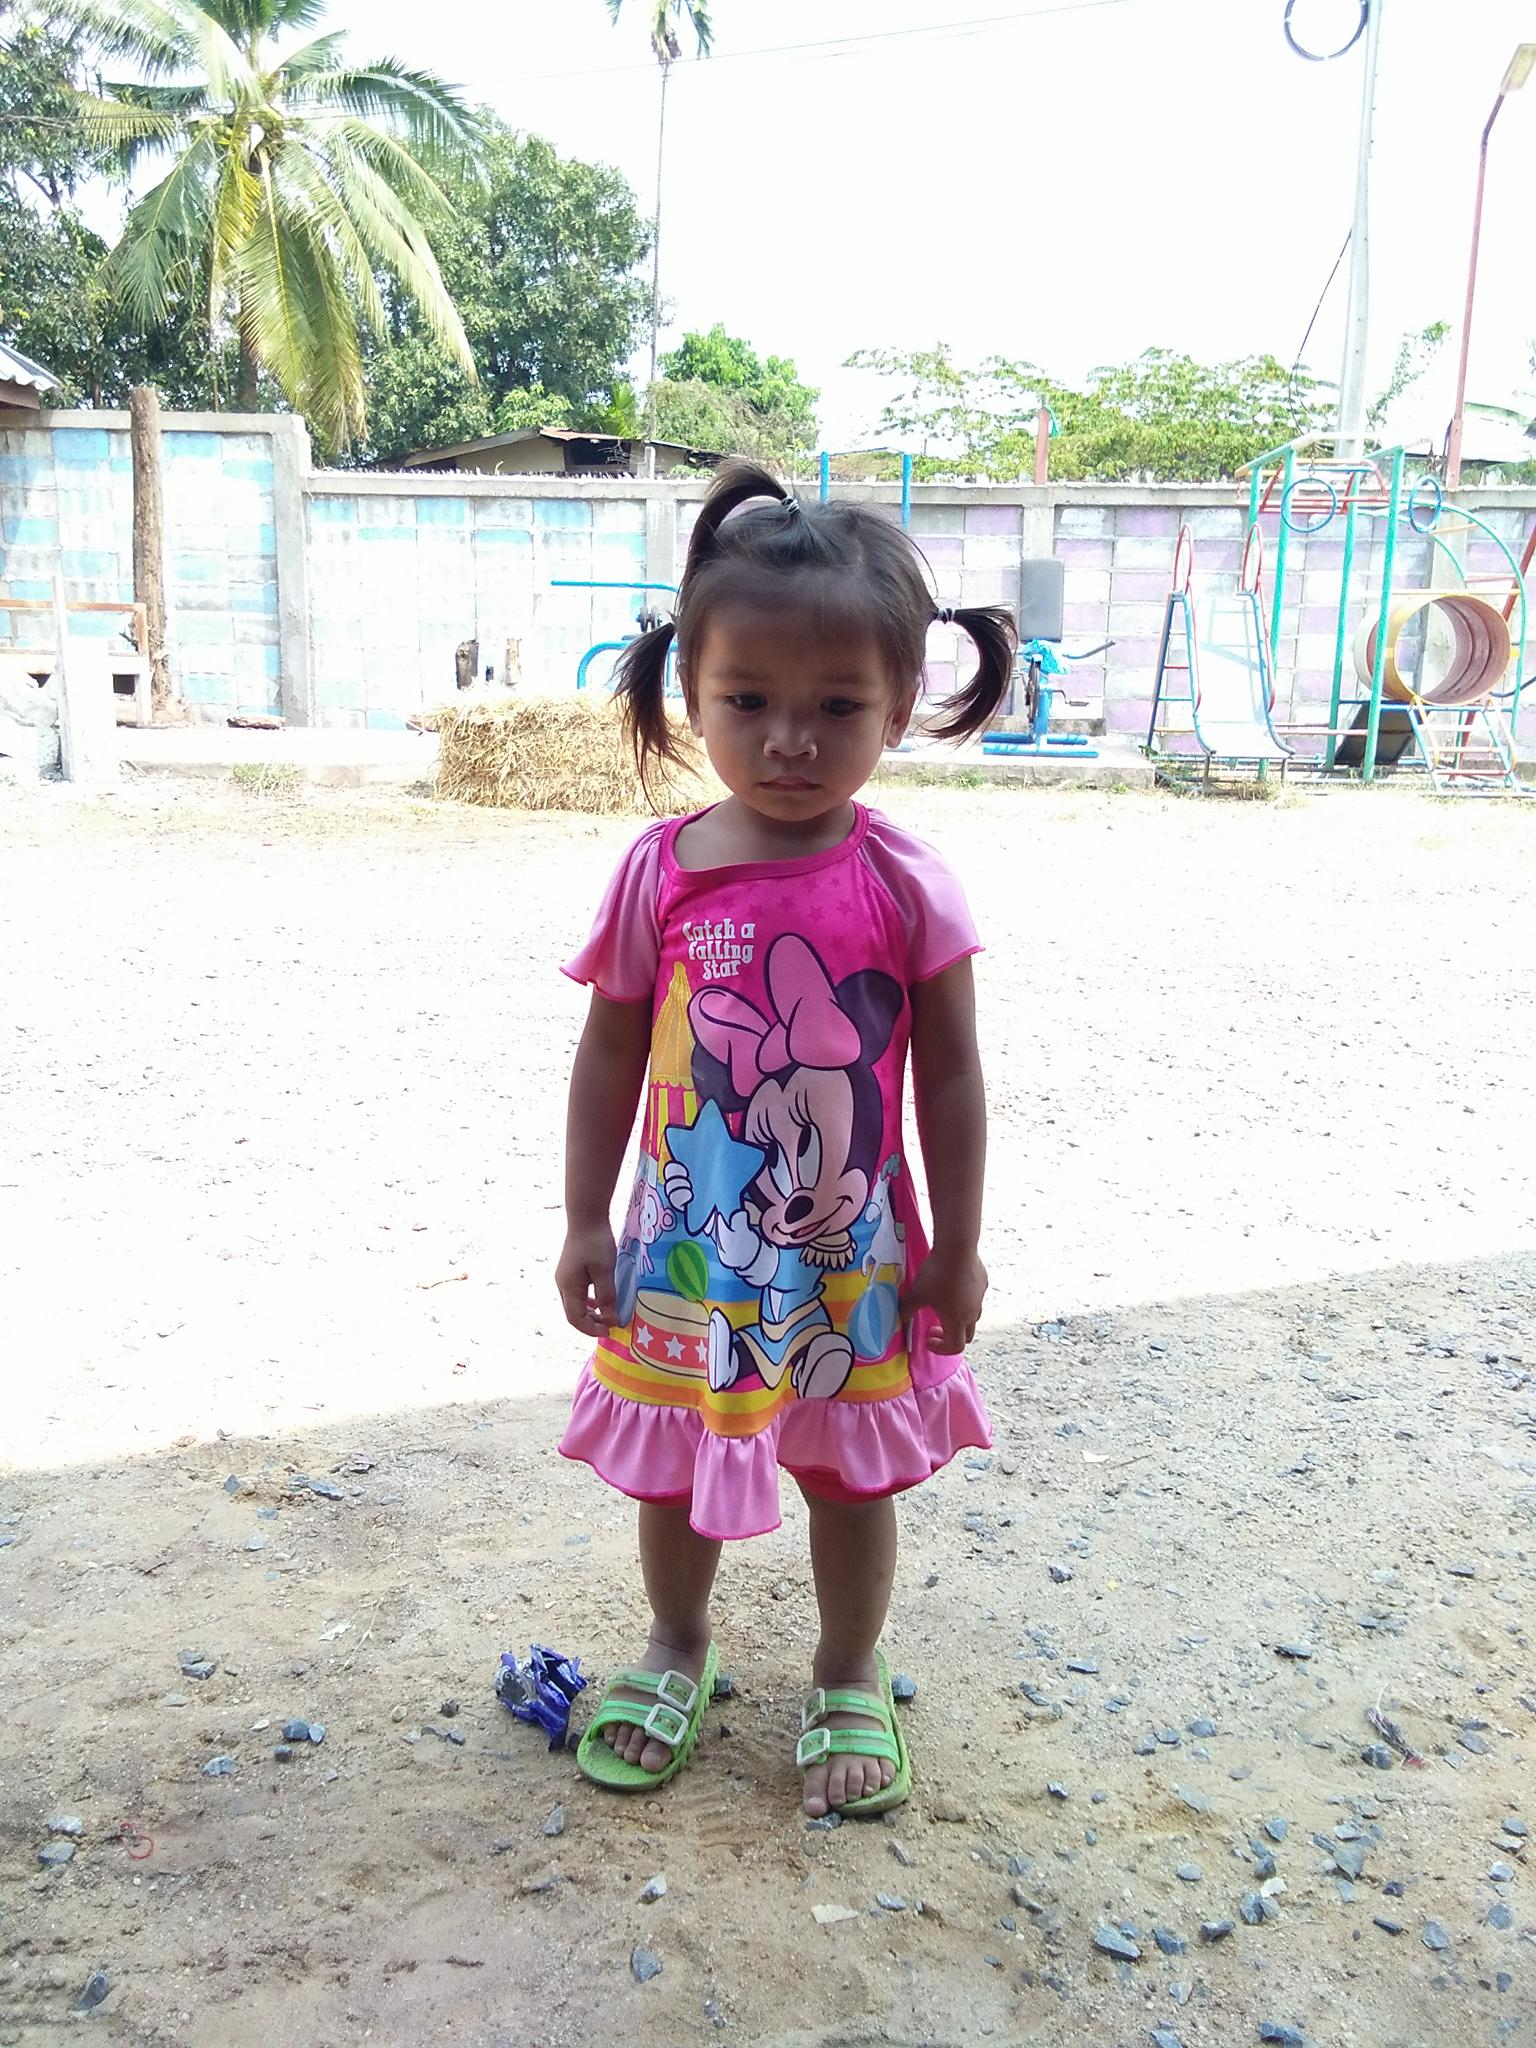 Kam (3 years old, girl)